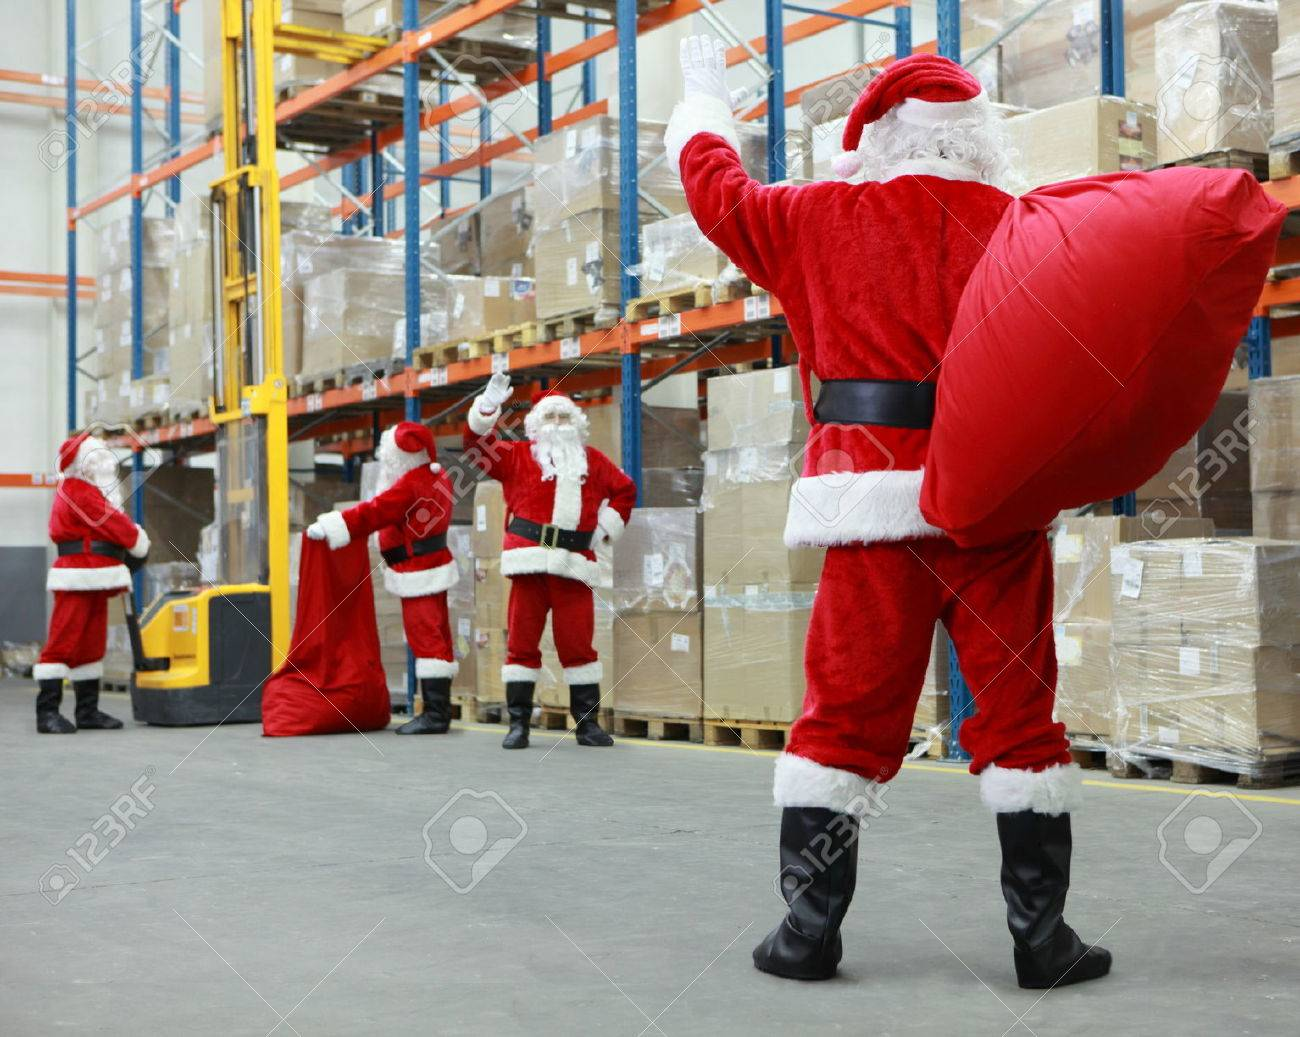 Group of santa clauses working together in storehouse with gifts - 33313525